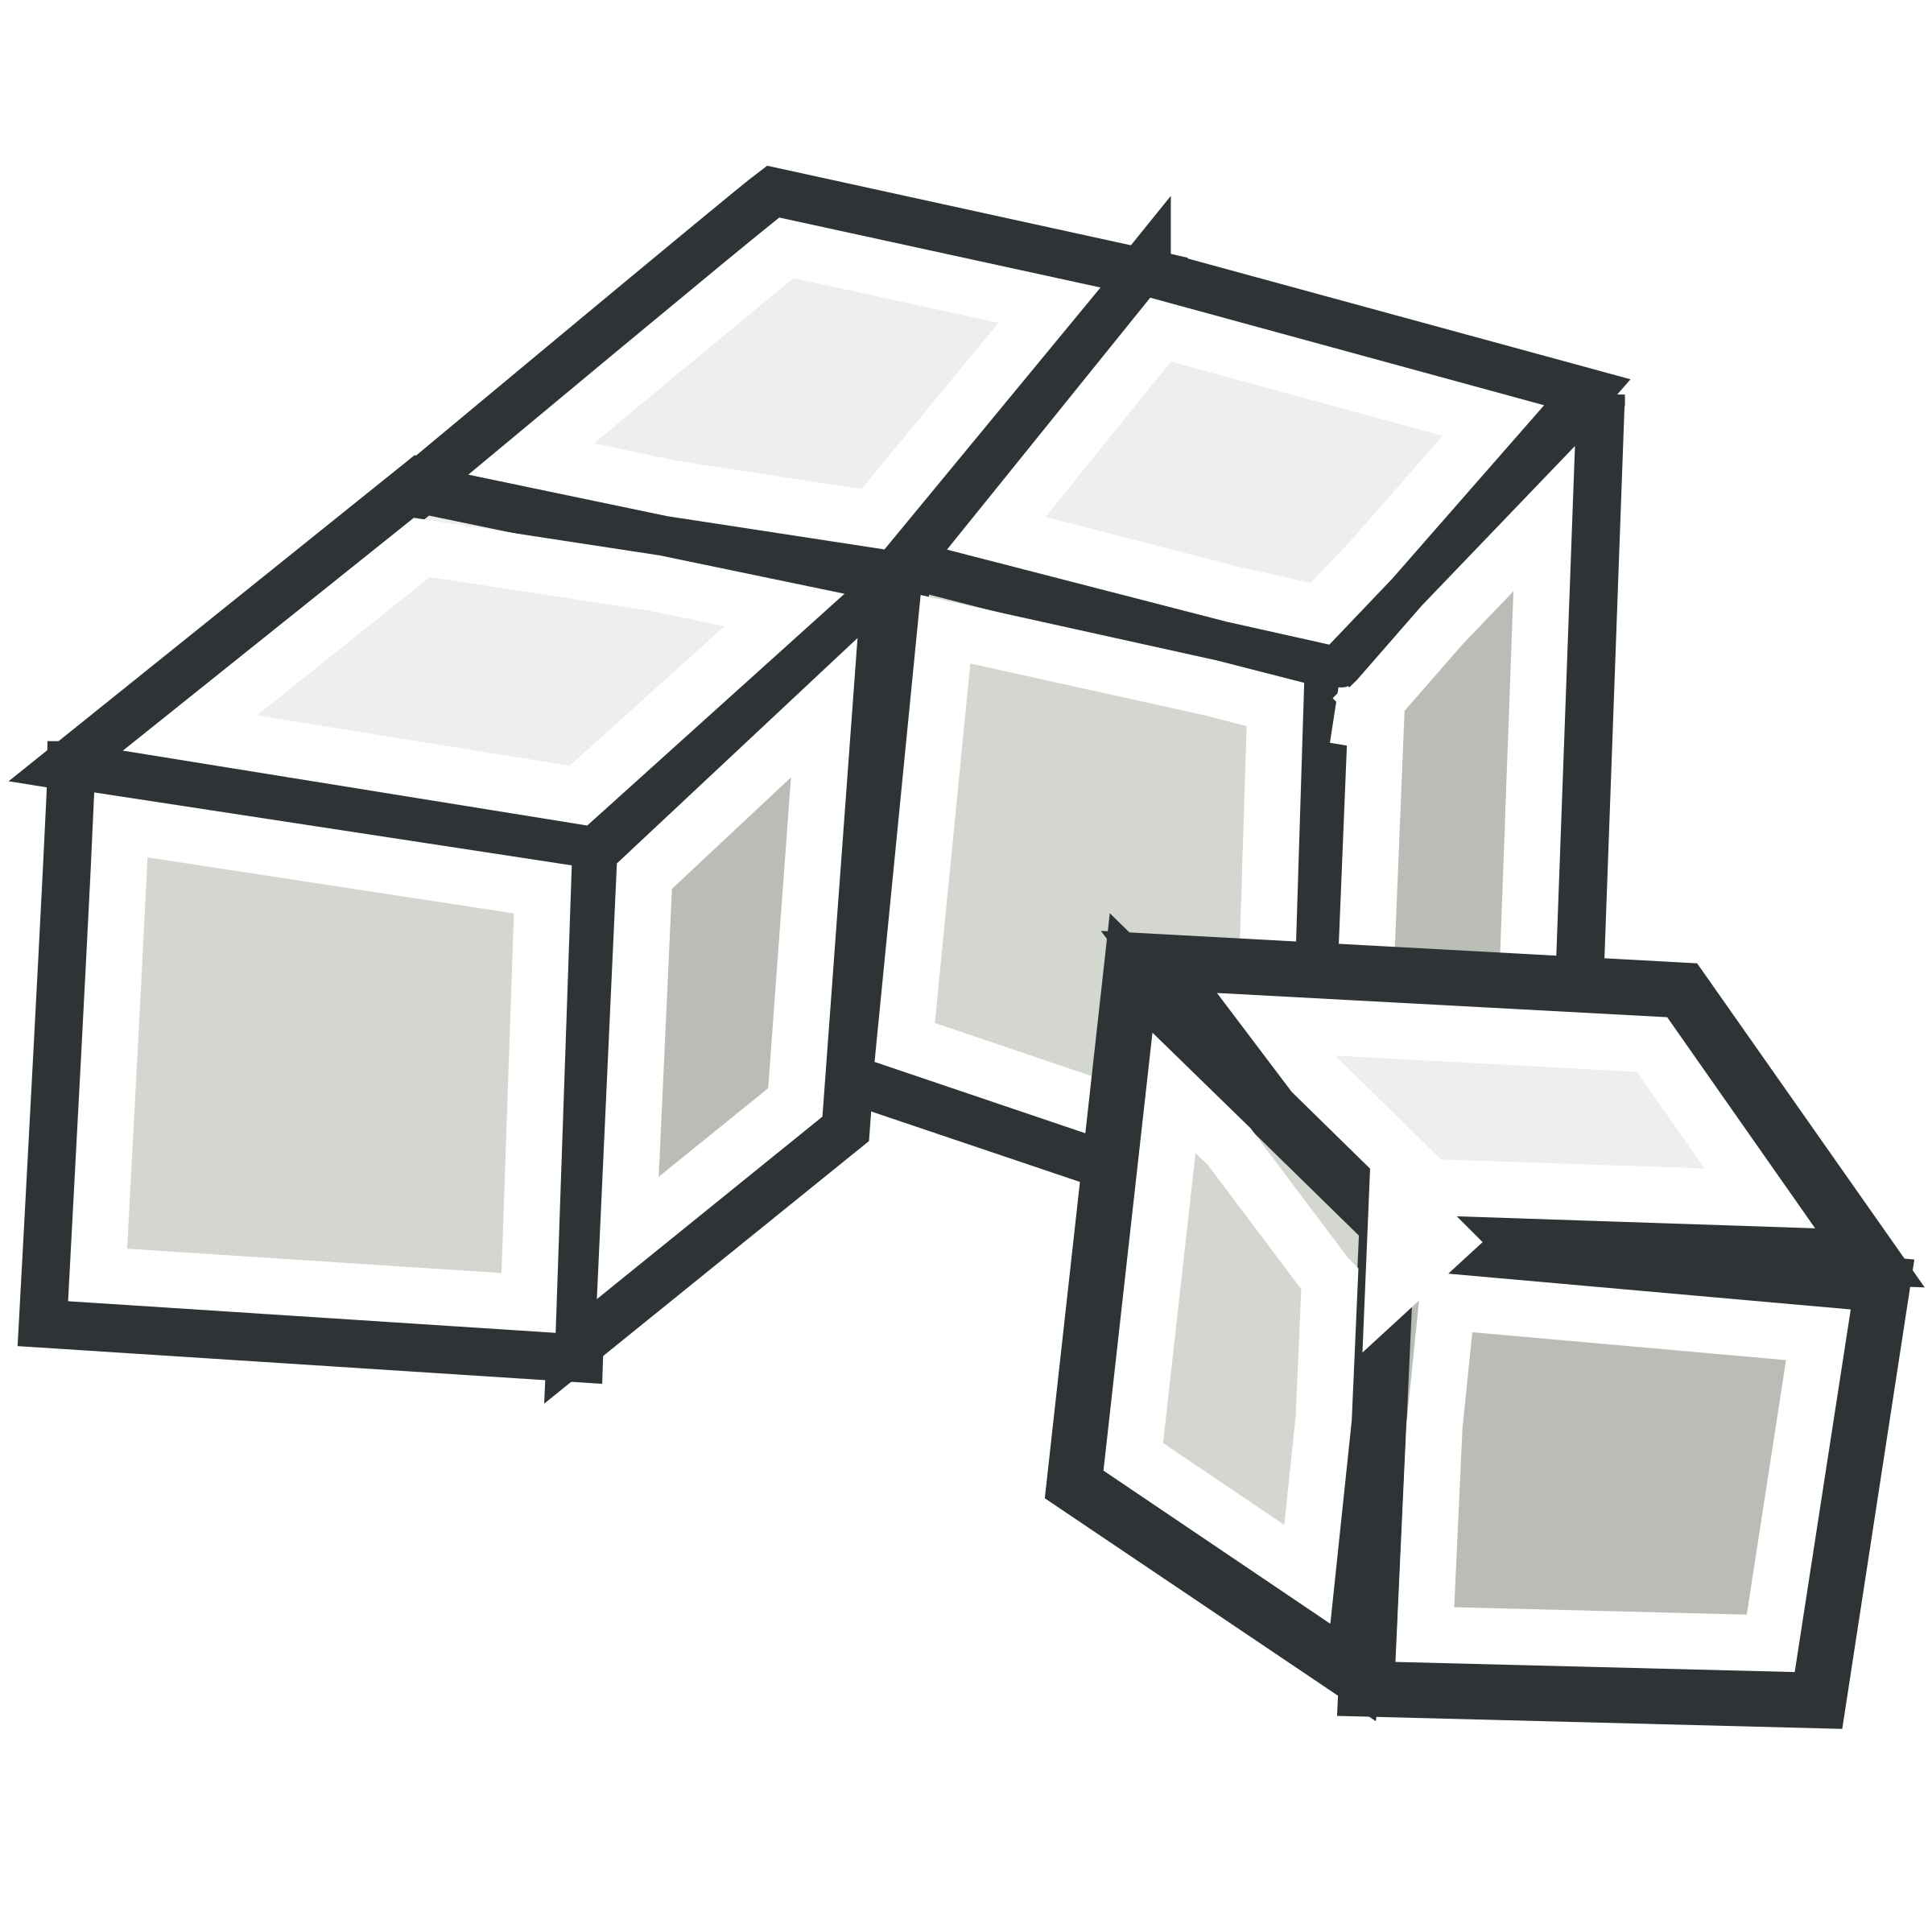 png stock Ice cubes clipart black and white. Tango style tofu big